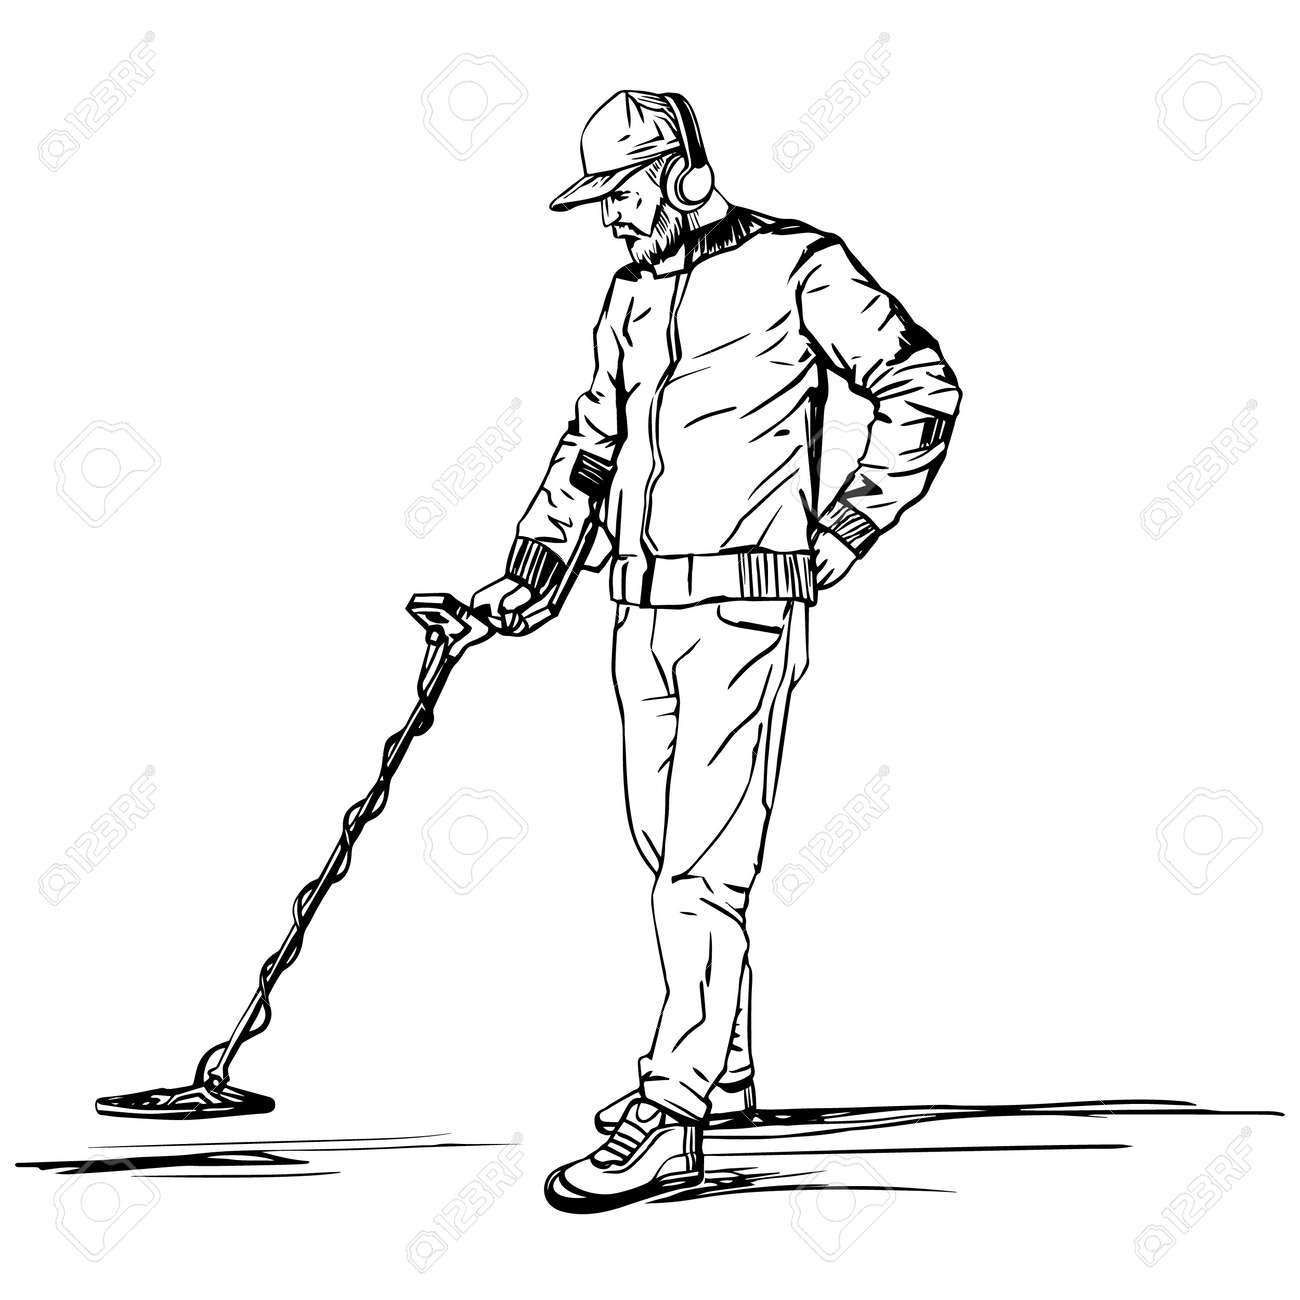 A man searches for treasures with a metal detector. A vector sketch drawn by hand against a white background. - 142881962